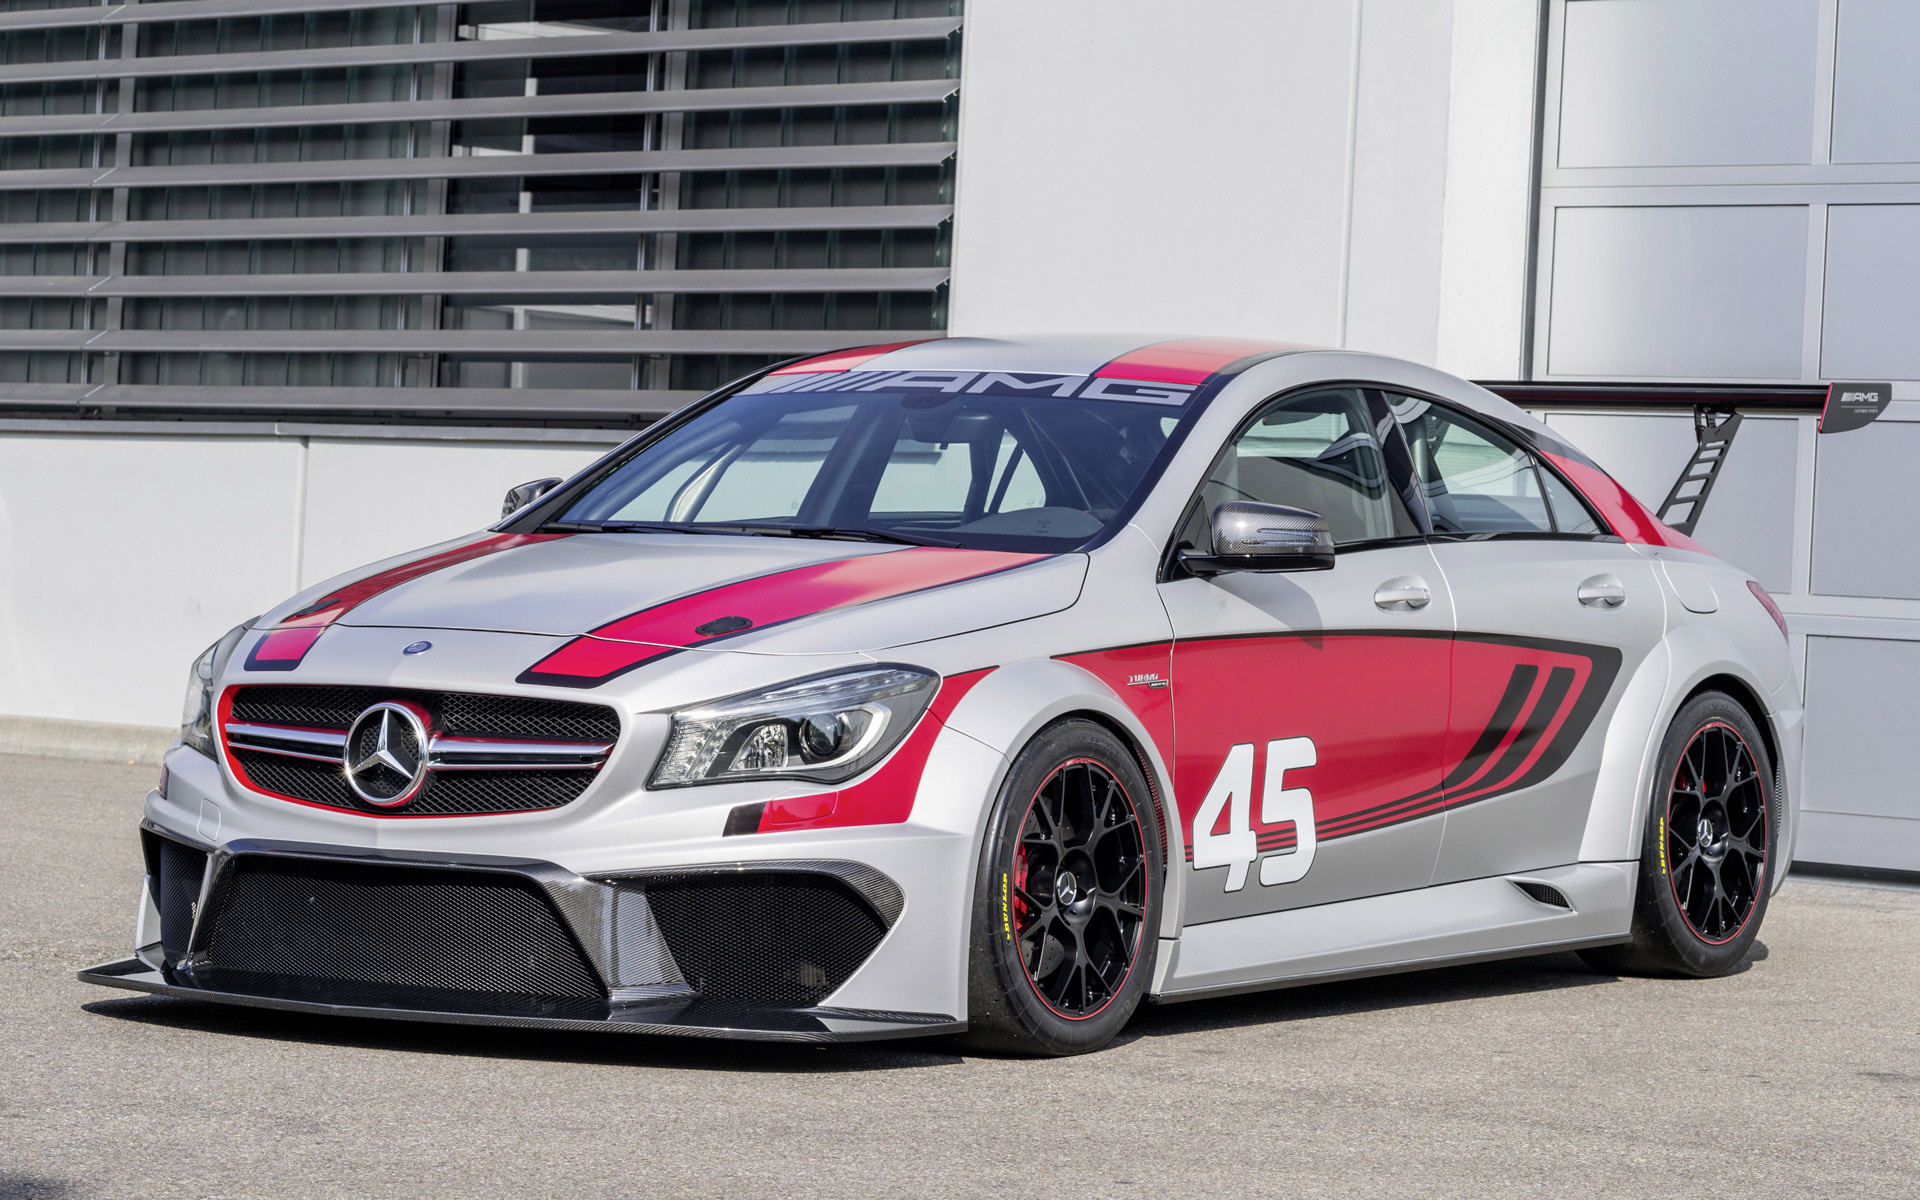 Nissan Gtr Car Hd Wallpapers Mercedes Benz Cla 45 Amg Racing Series Concept 2013